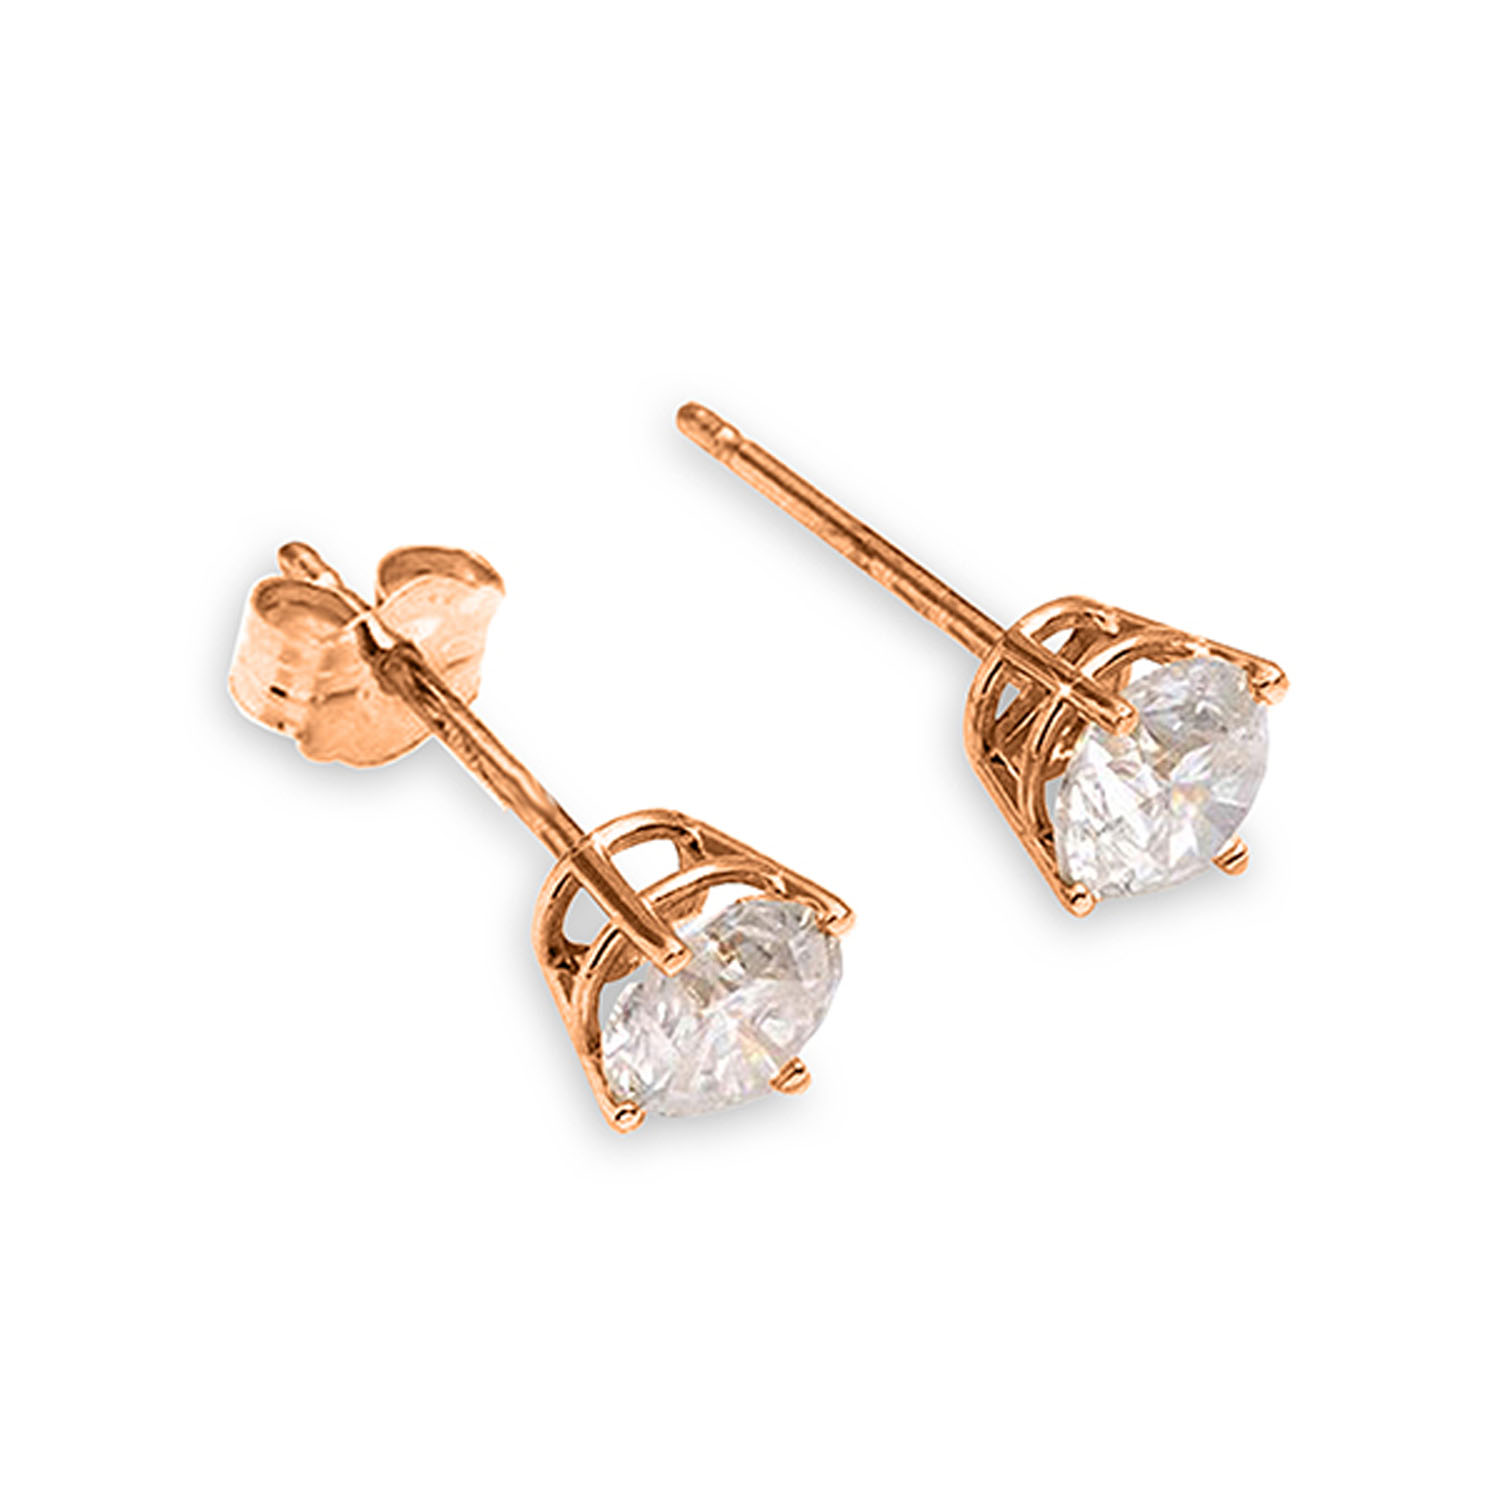 8a5217a6f 0.2 Carat 14K Solid Rose Gold Stud Earrings 0.20 Carat Natural ...